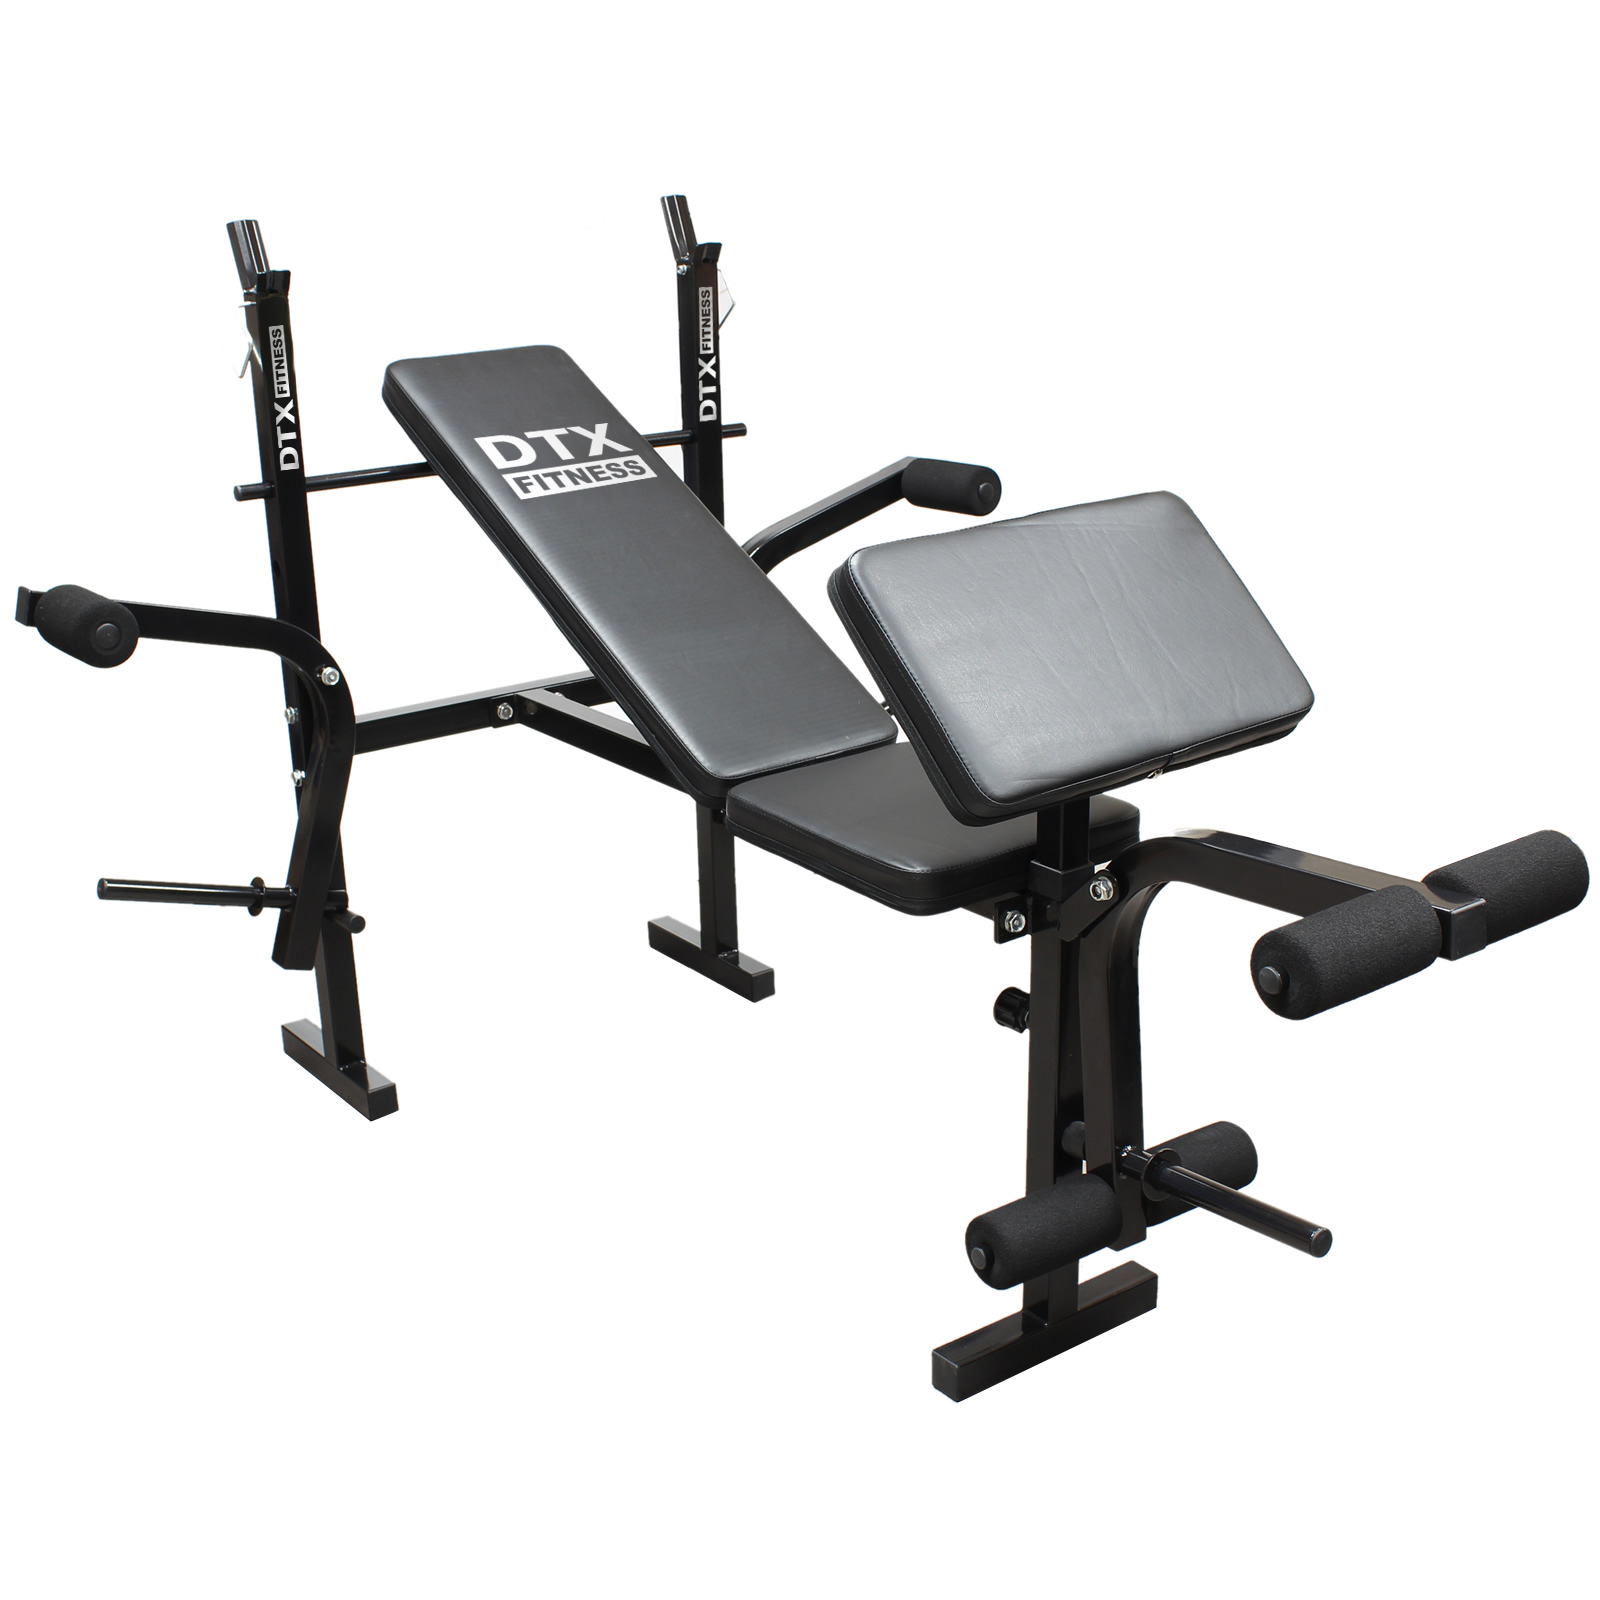 cheap com weight combo with bench angeloferrer and weights included